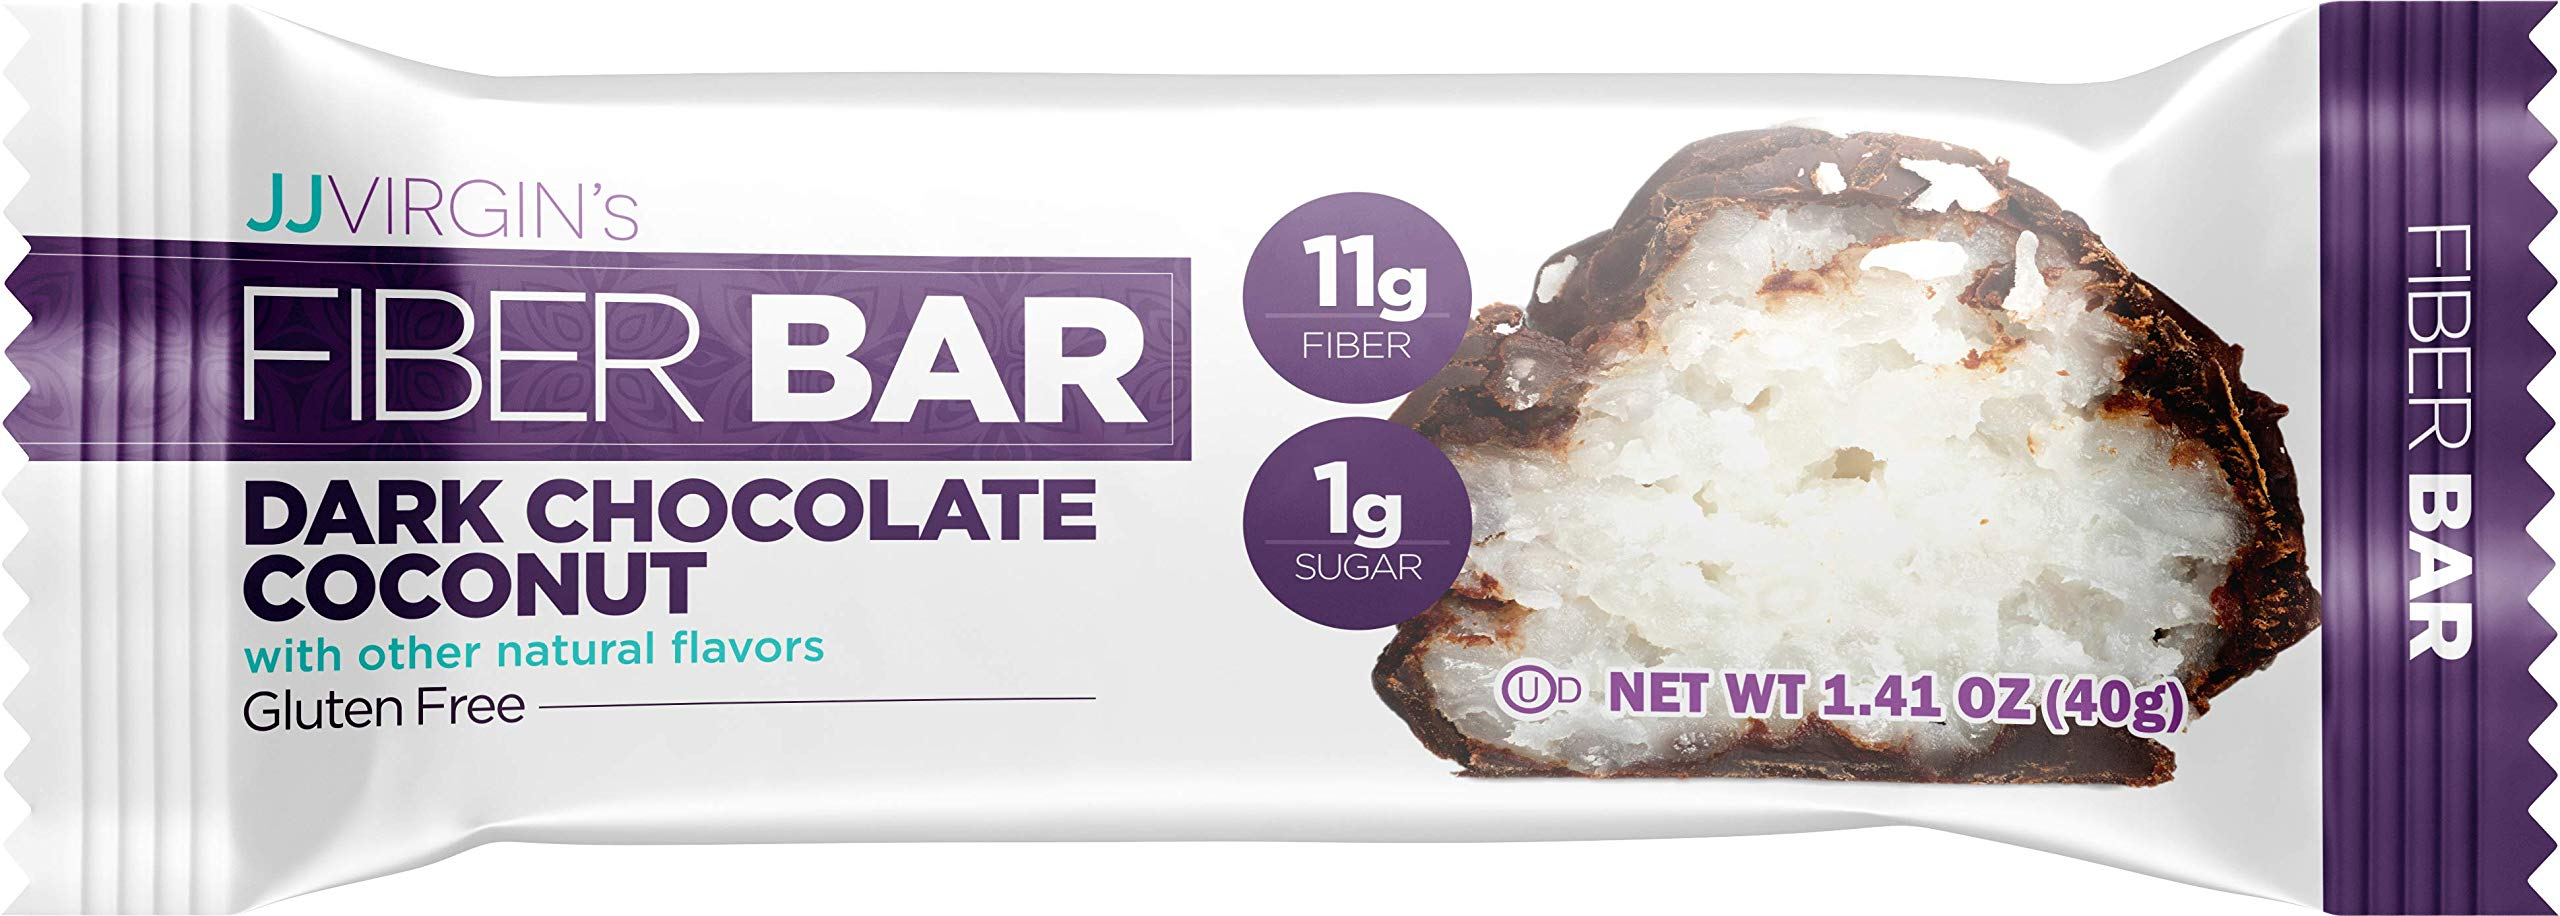 JJ Virgin Dark Chocolate Coconut Fiber Bars - 11g of Fiber (Box of 12) by JJ VIRGIN (Image #1)